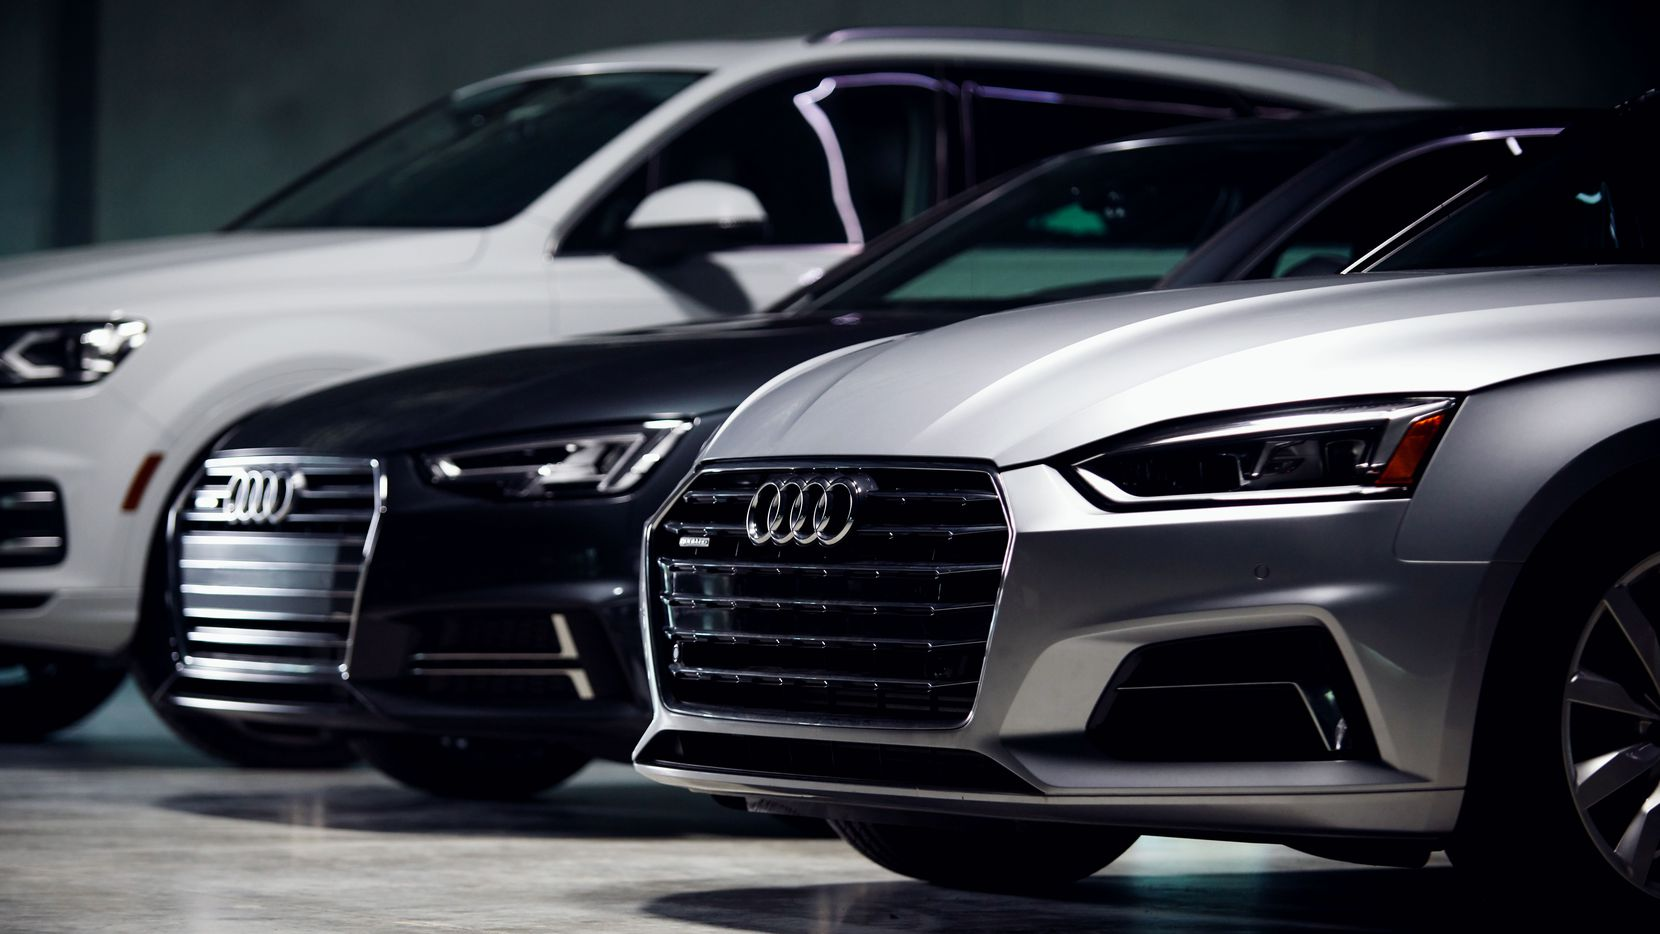 What's it like to have a garage full of Audis? It was great.